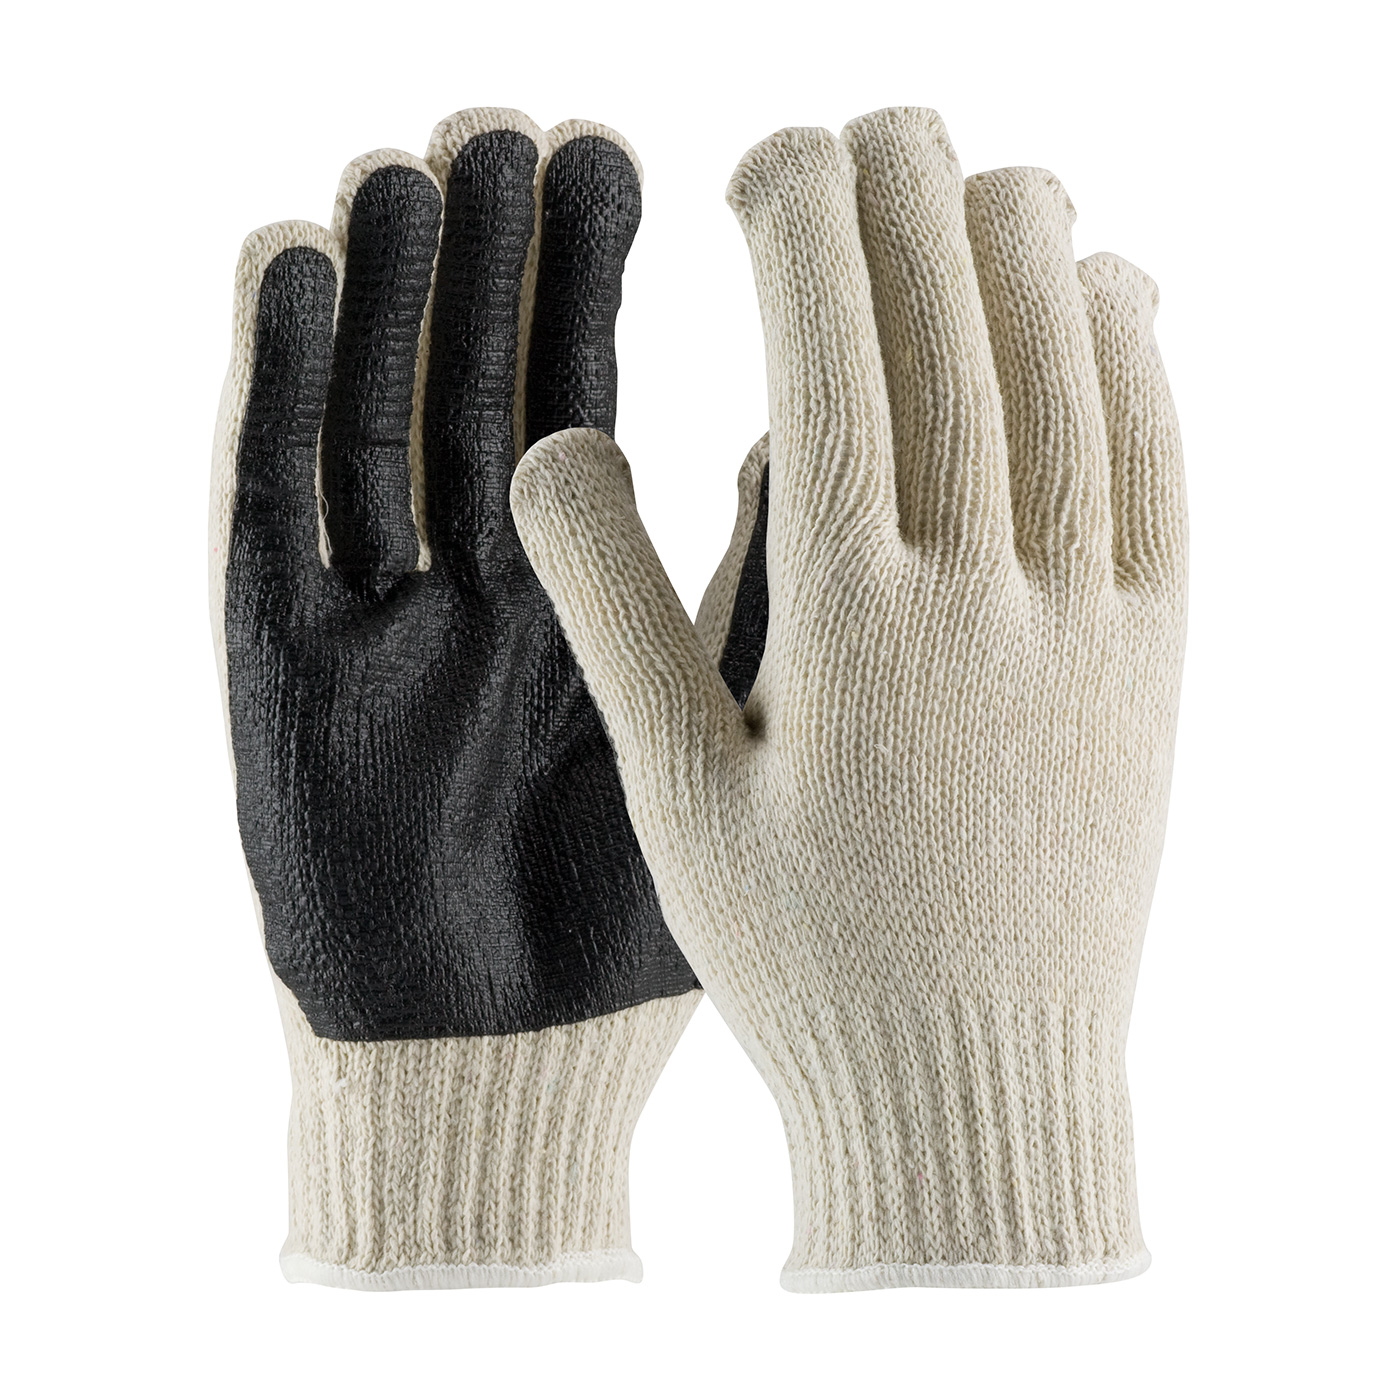 PIP® Seamless Knit Cotton / Polyester Glove with PVC Palm Coating - Regular Weight   #36-110PC-BK